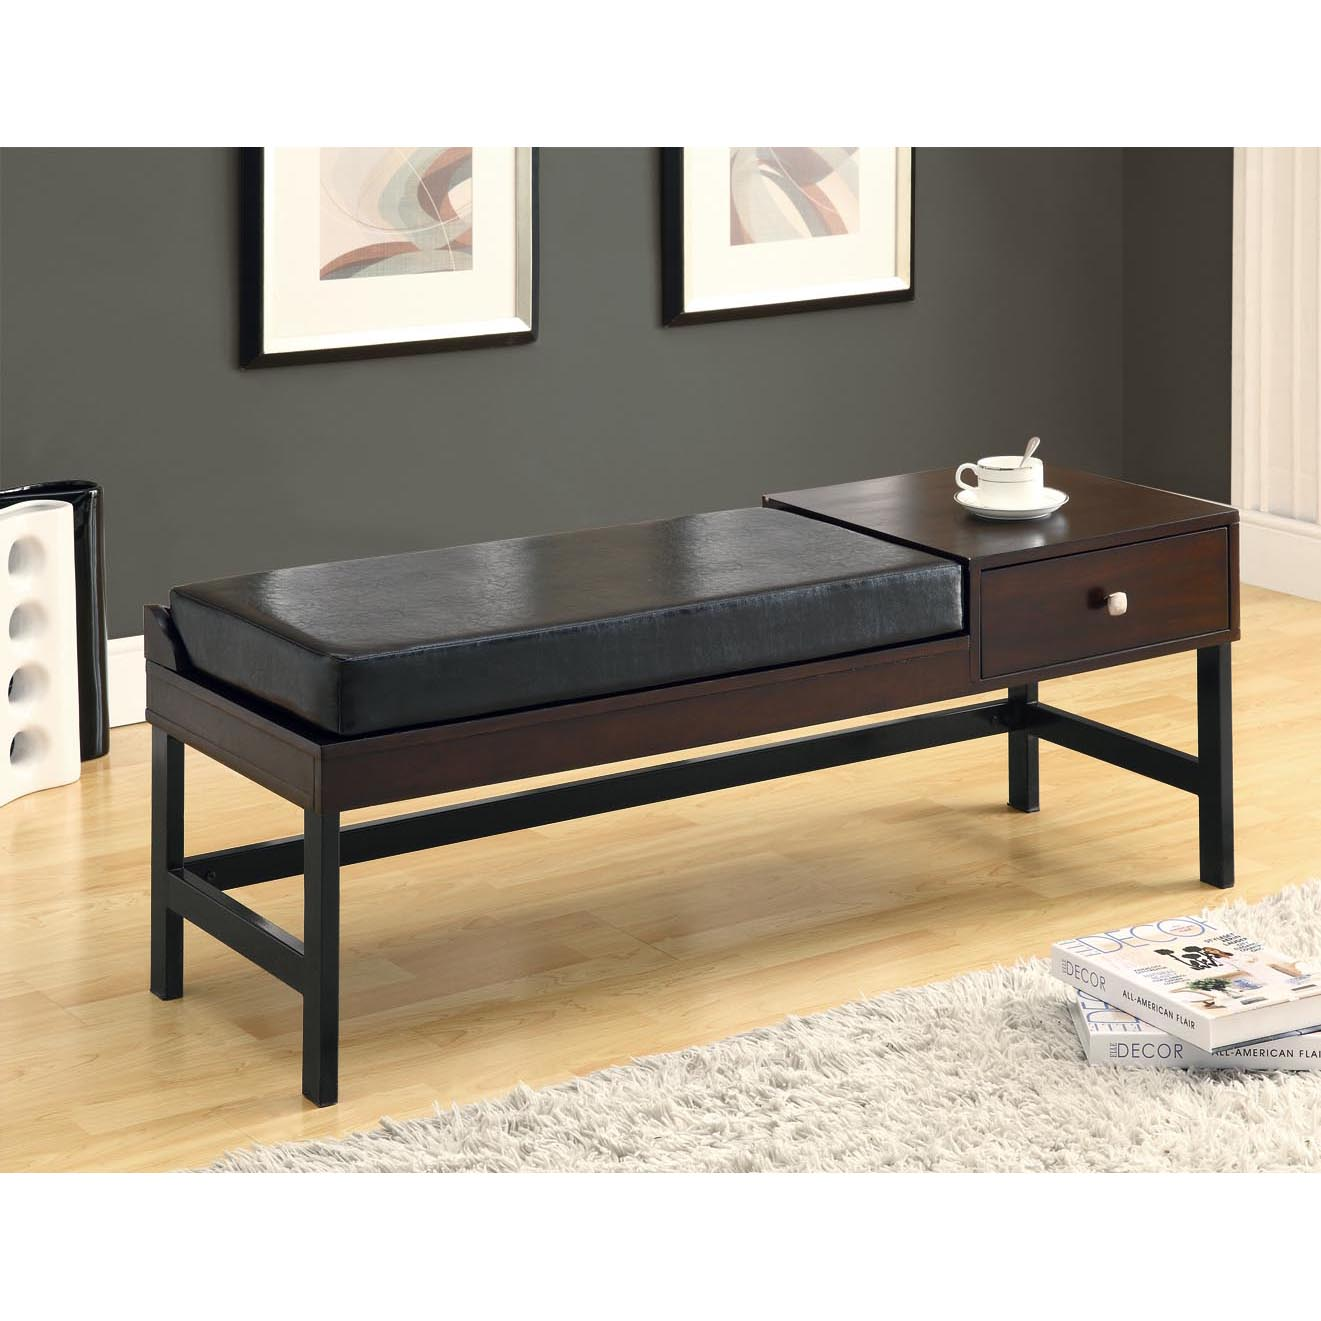 Dark Brown Leather-Look / Cappuccino Bench